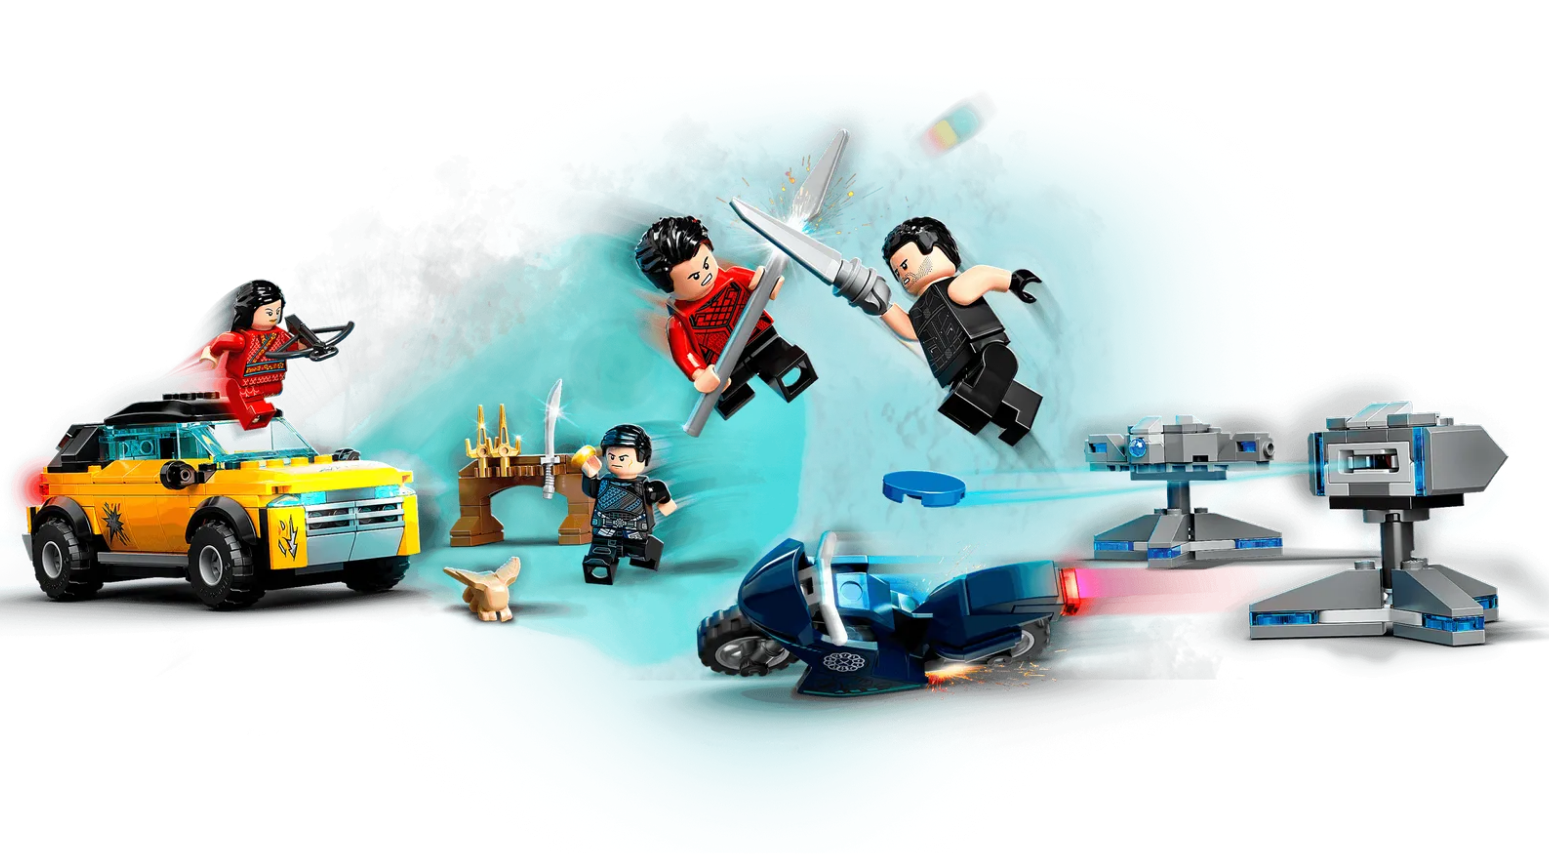 Shang Chi Lego Set in Action